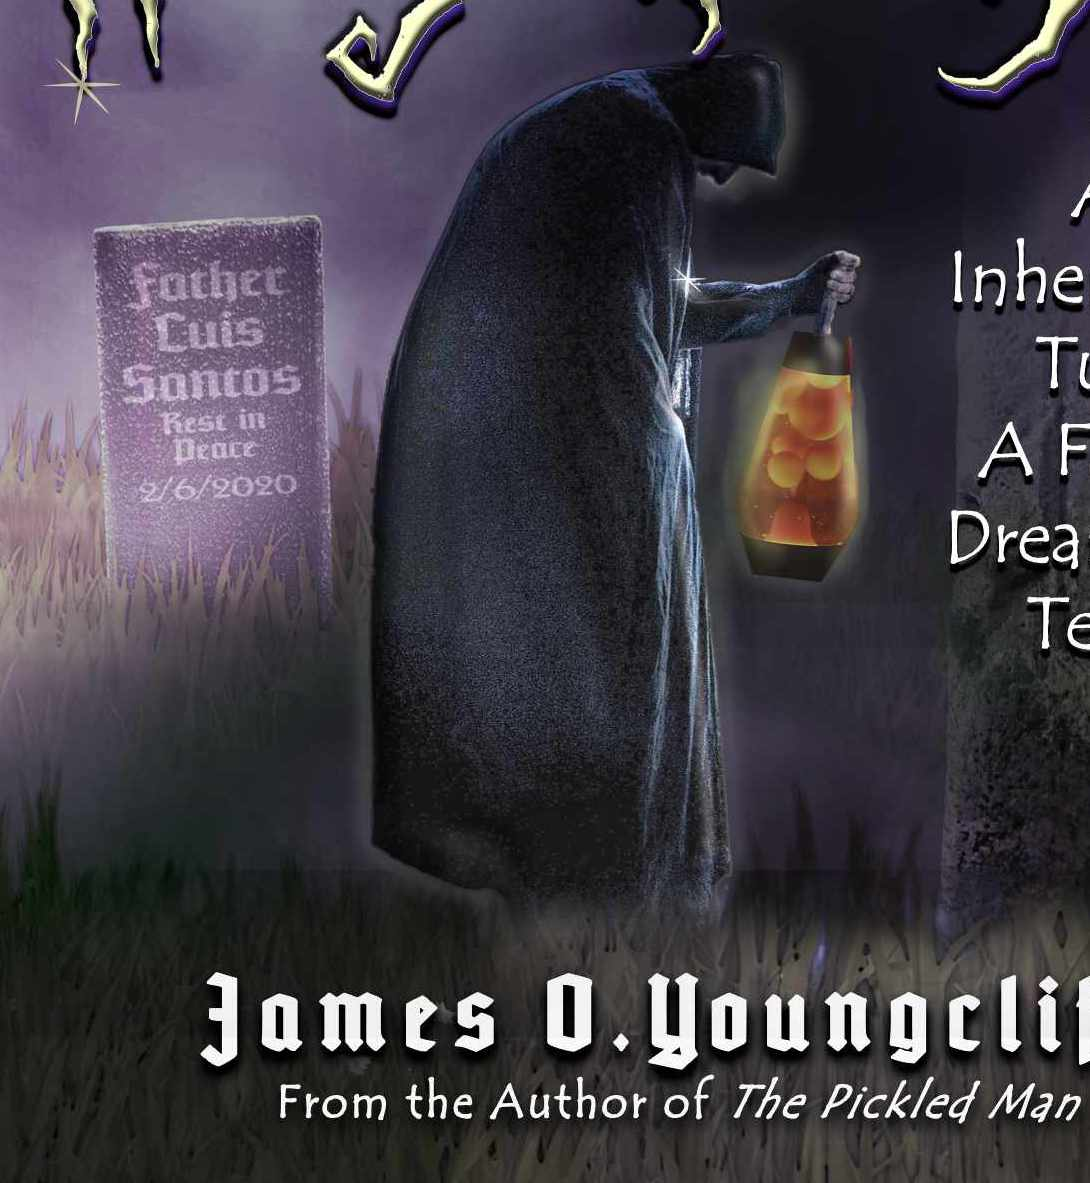 Cover Detail for next YA novel from James O. Youngcliff